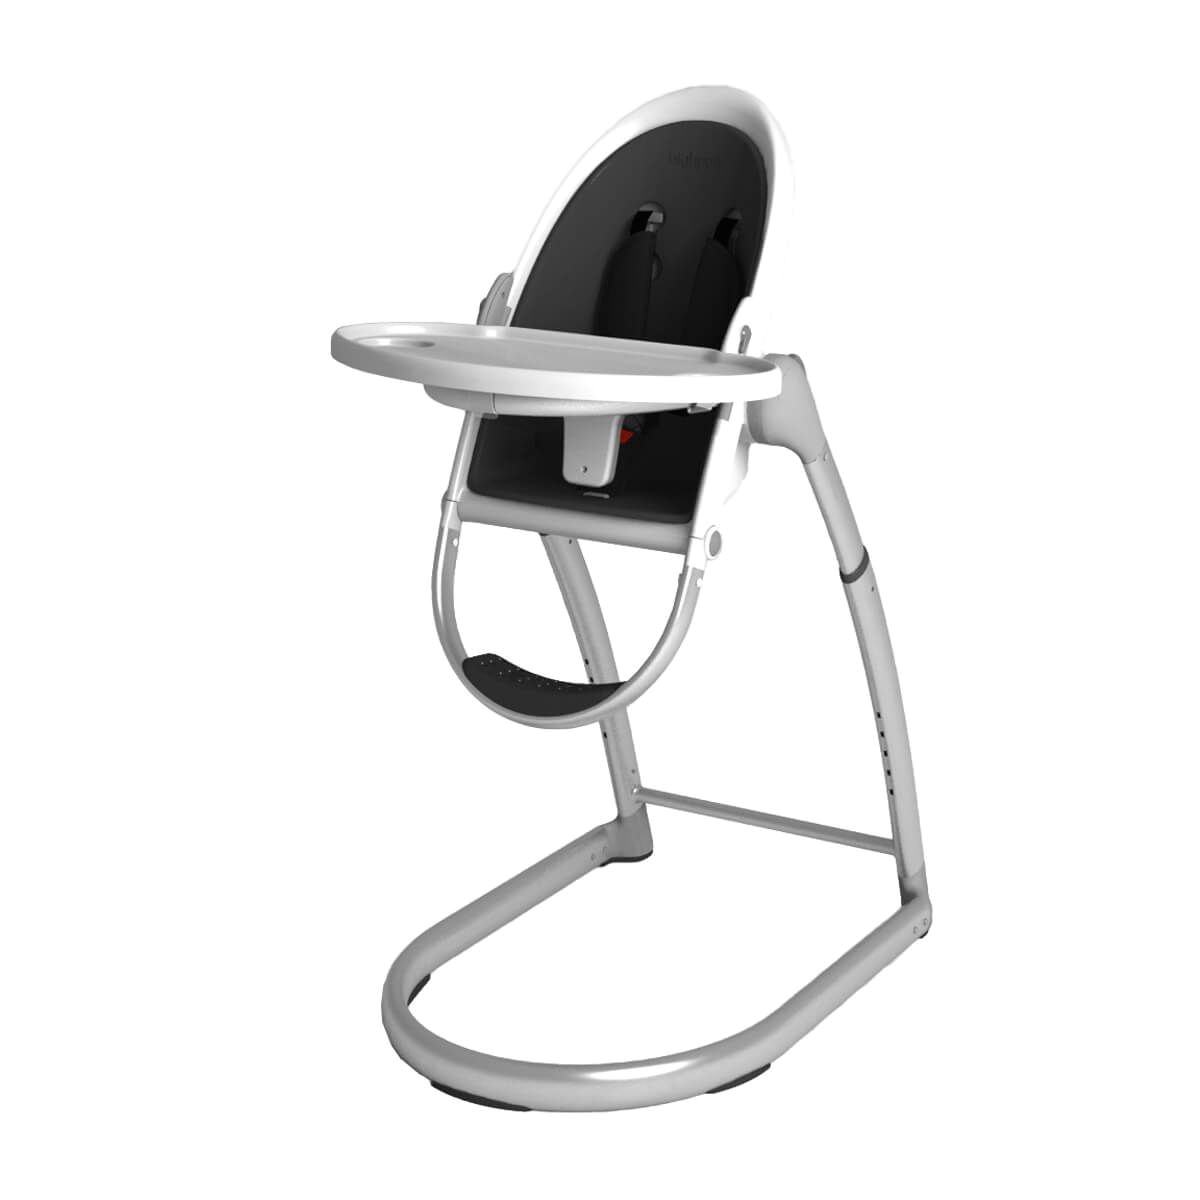 4moms High Chair Amazon 55 Bar Stool Baby High Chair Modern Home Furniture Check More at